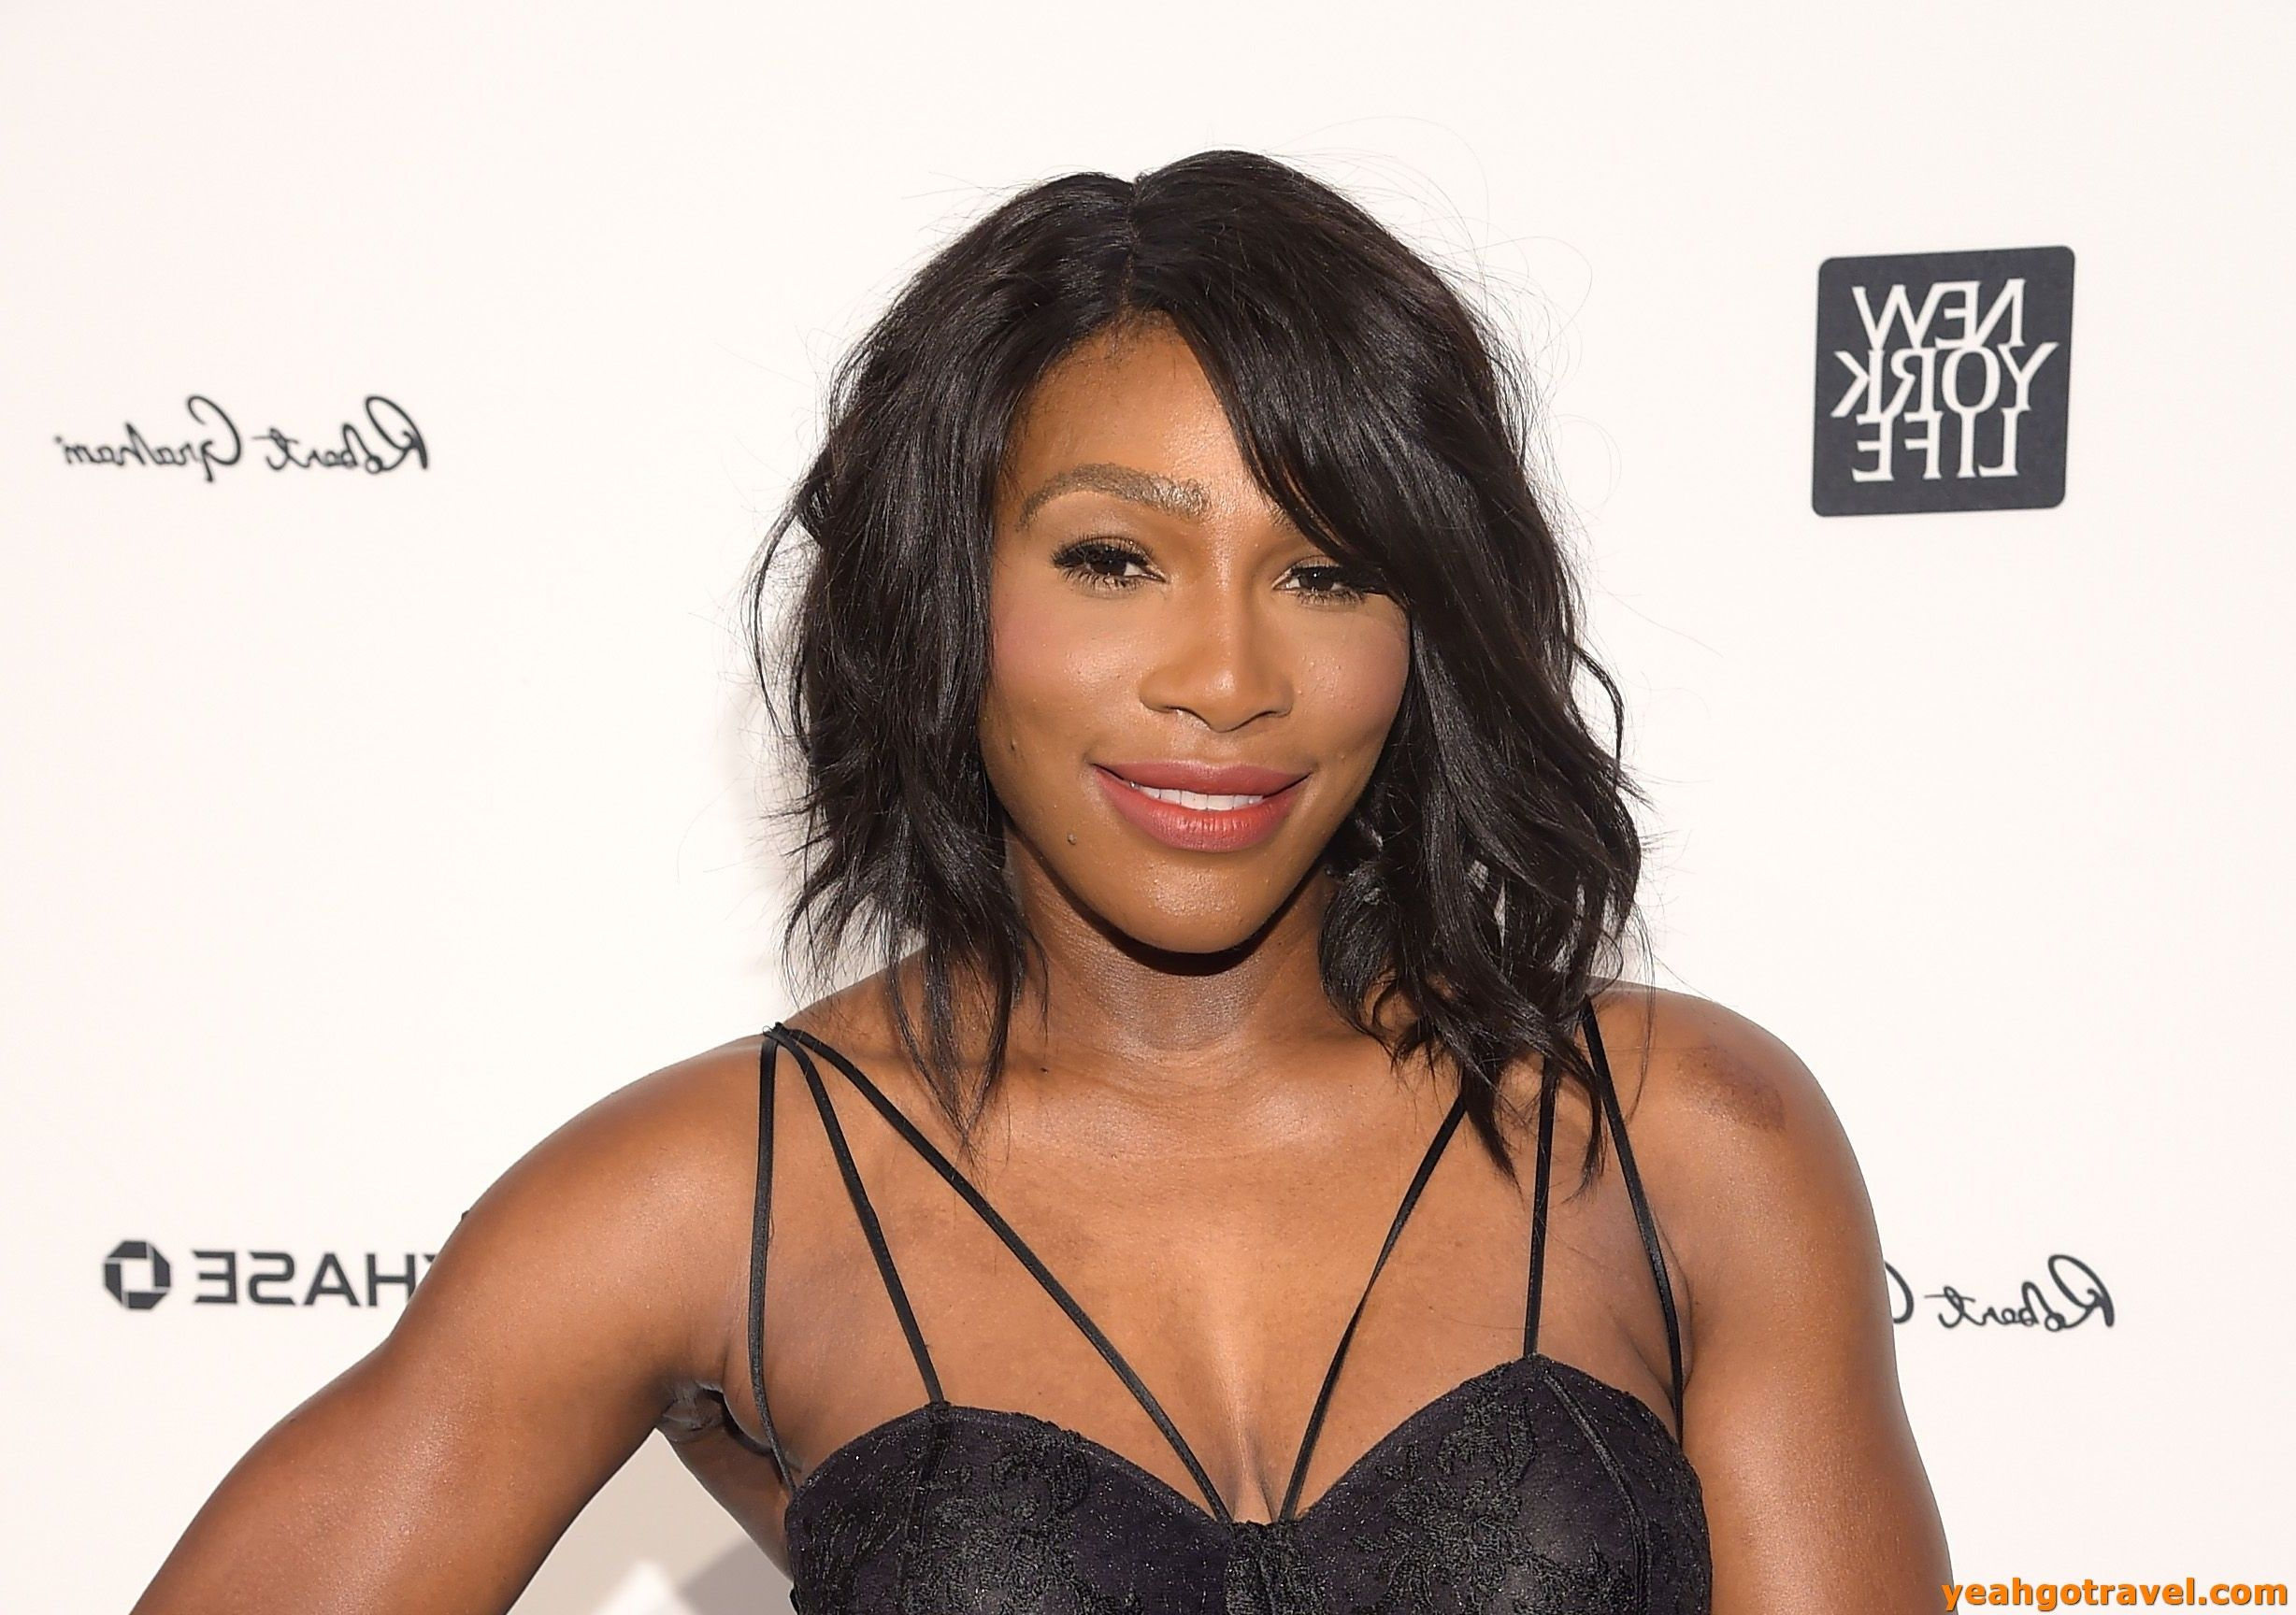 30 New Short Haircut Styles You Need To Try Right Now Yeahgotravel Com Serena Williams Serena Williams Body Serena